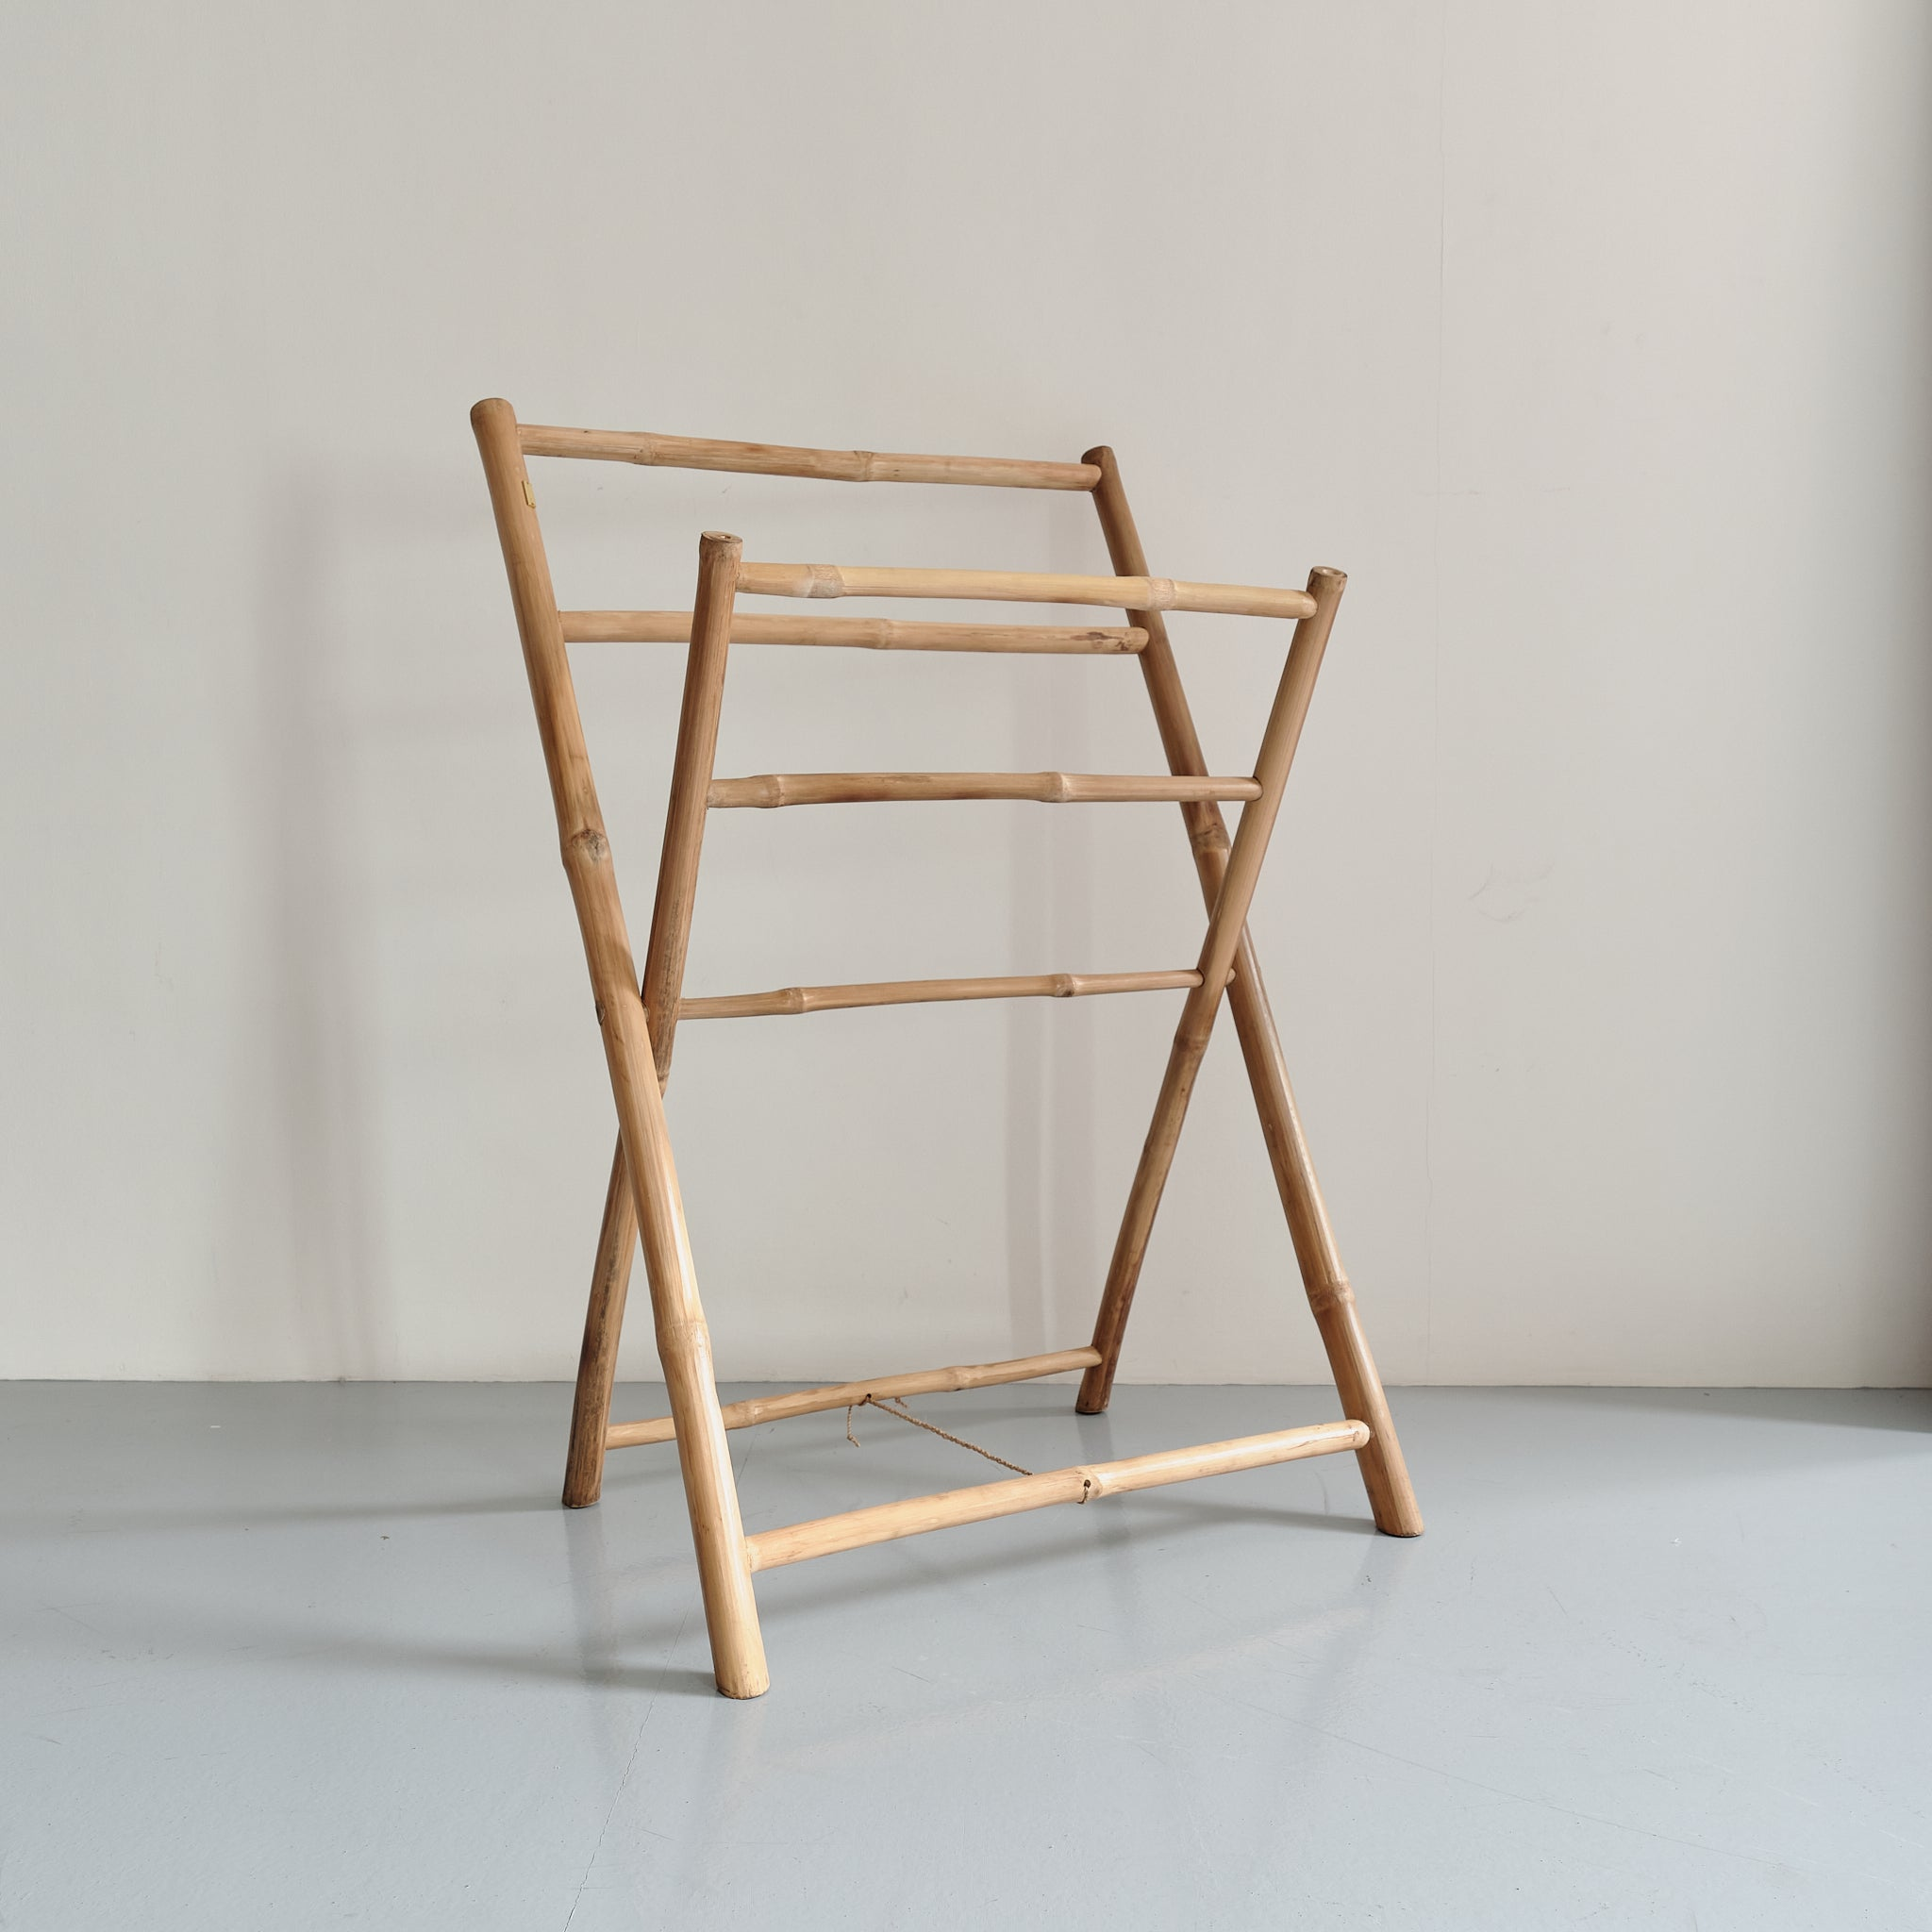 Bamboo clothes rack